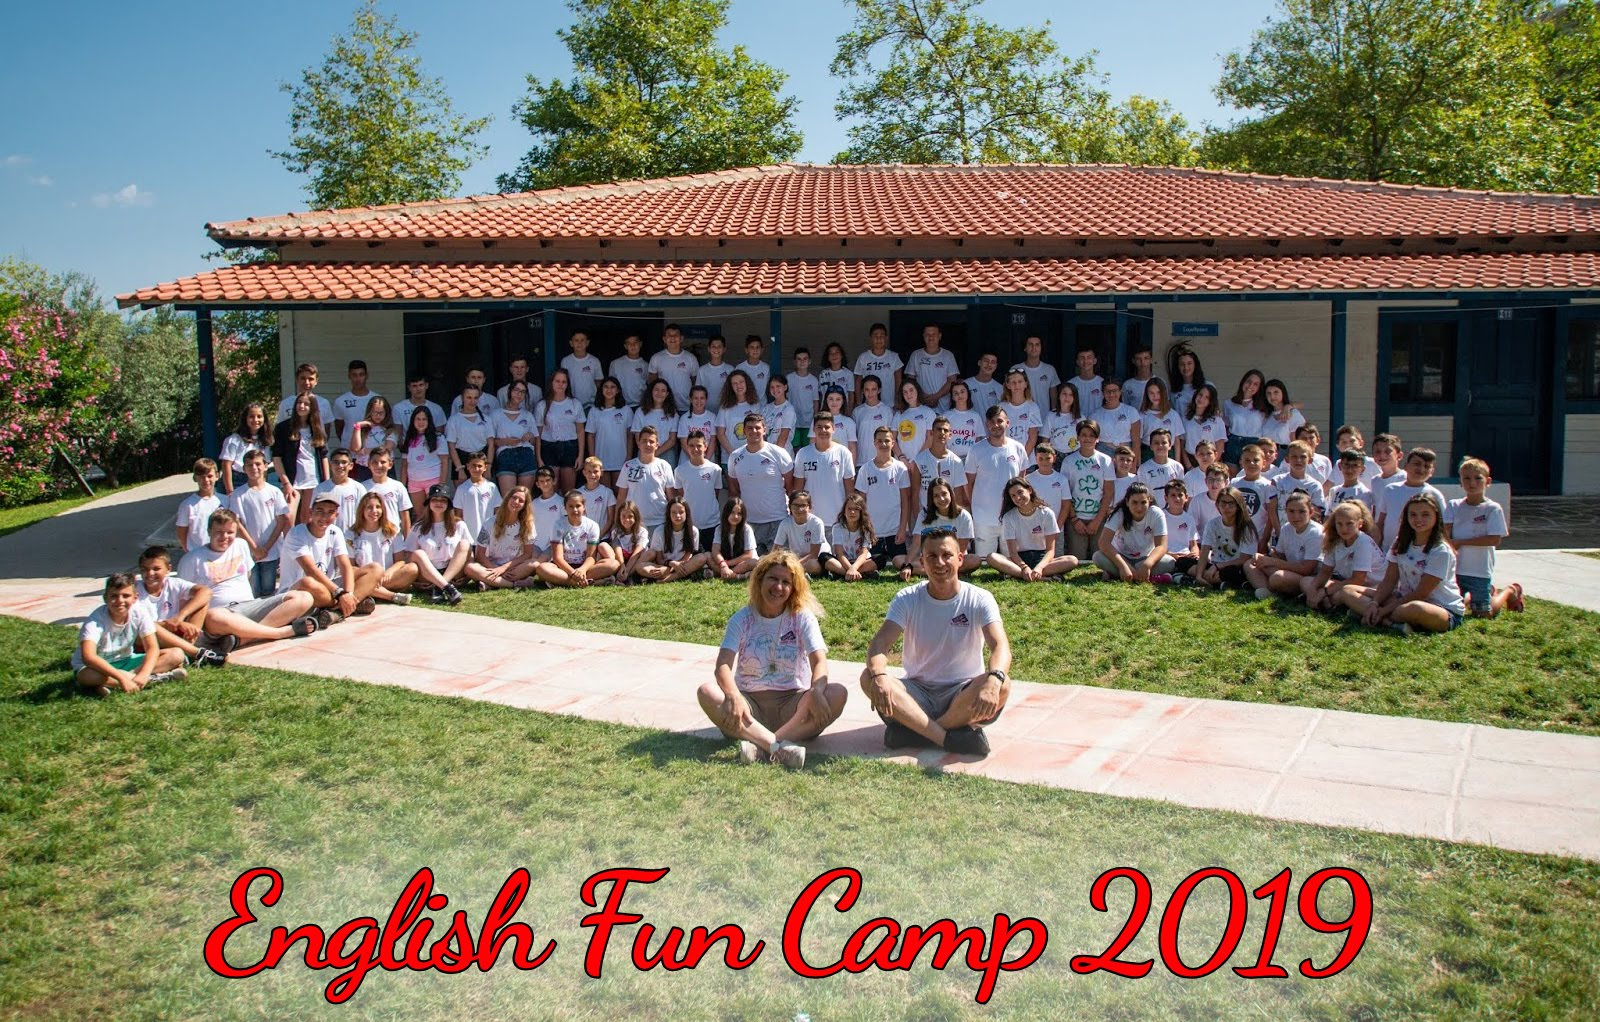 English Fun Camp 2019